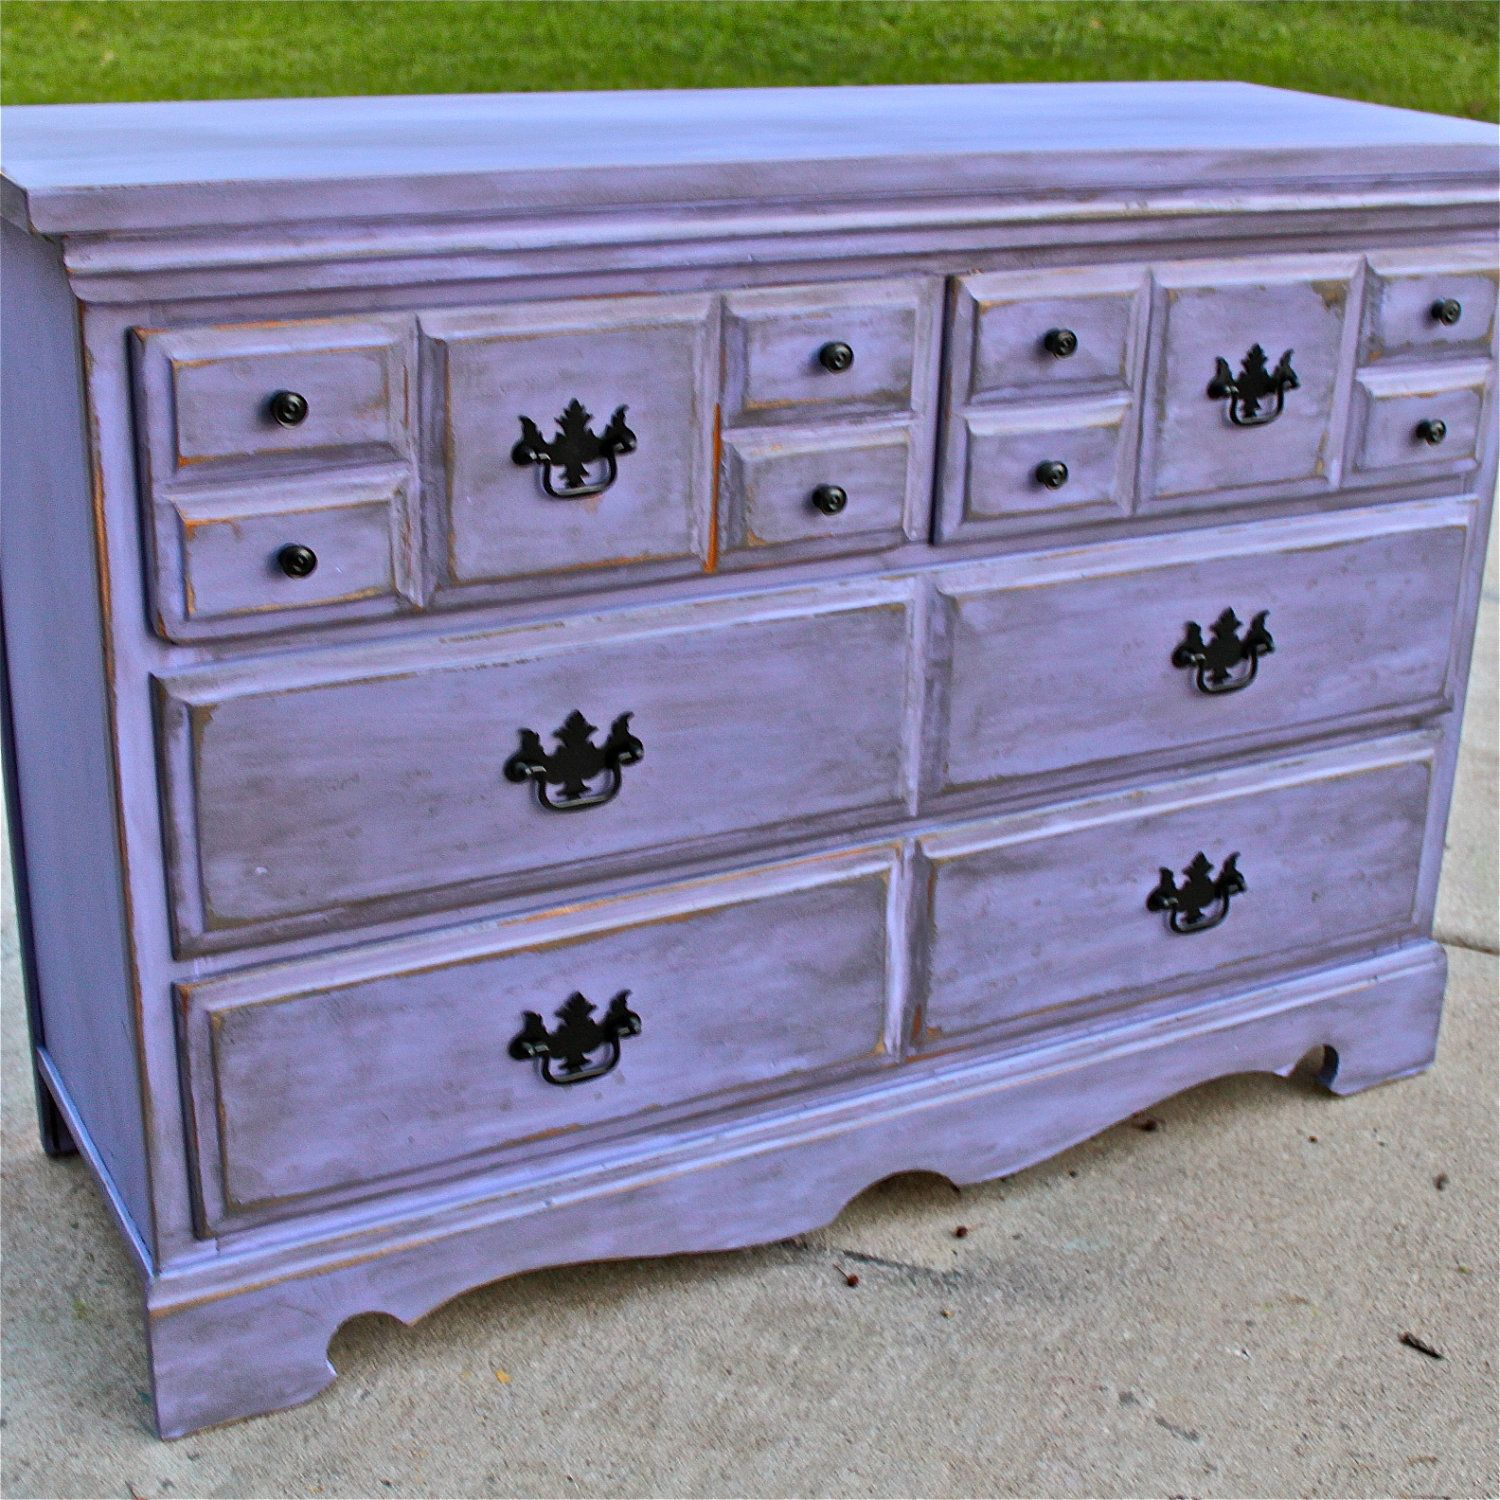 Lilac Purple Vintage Dresser Buffet Bedroom Furniture Distressed Black Drawer Pulls